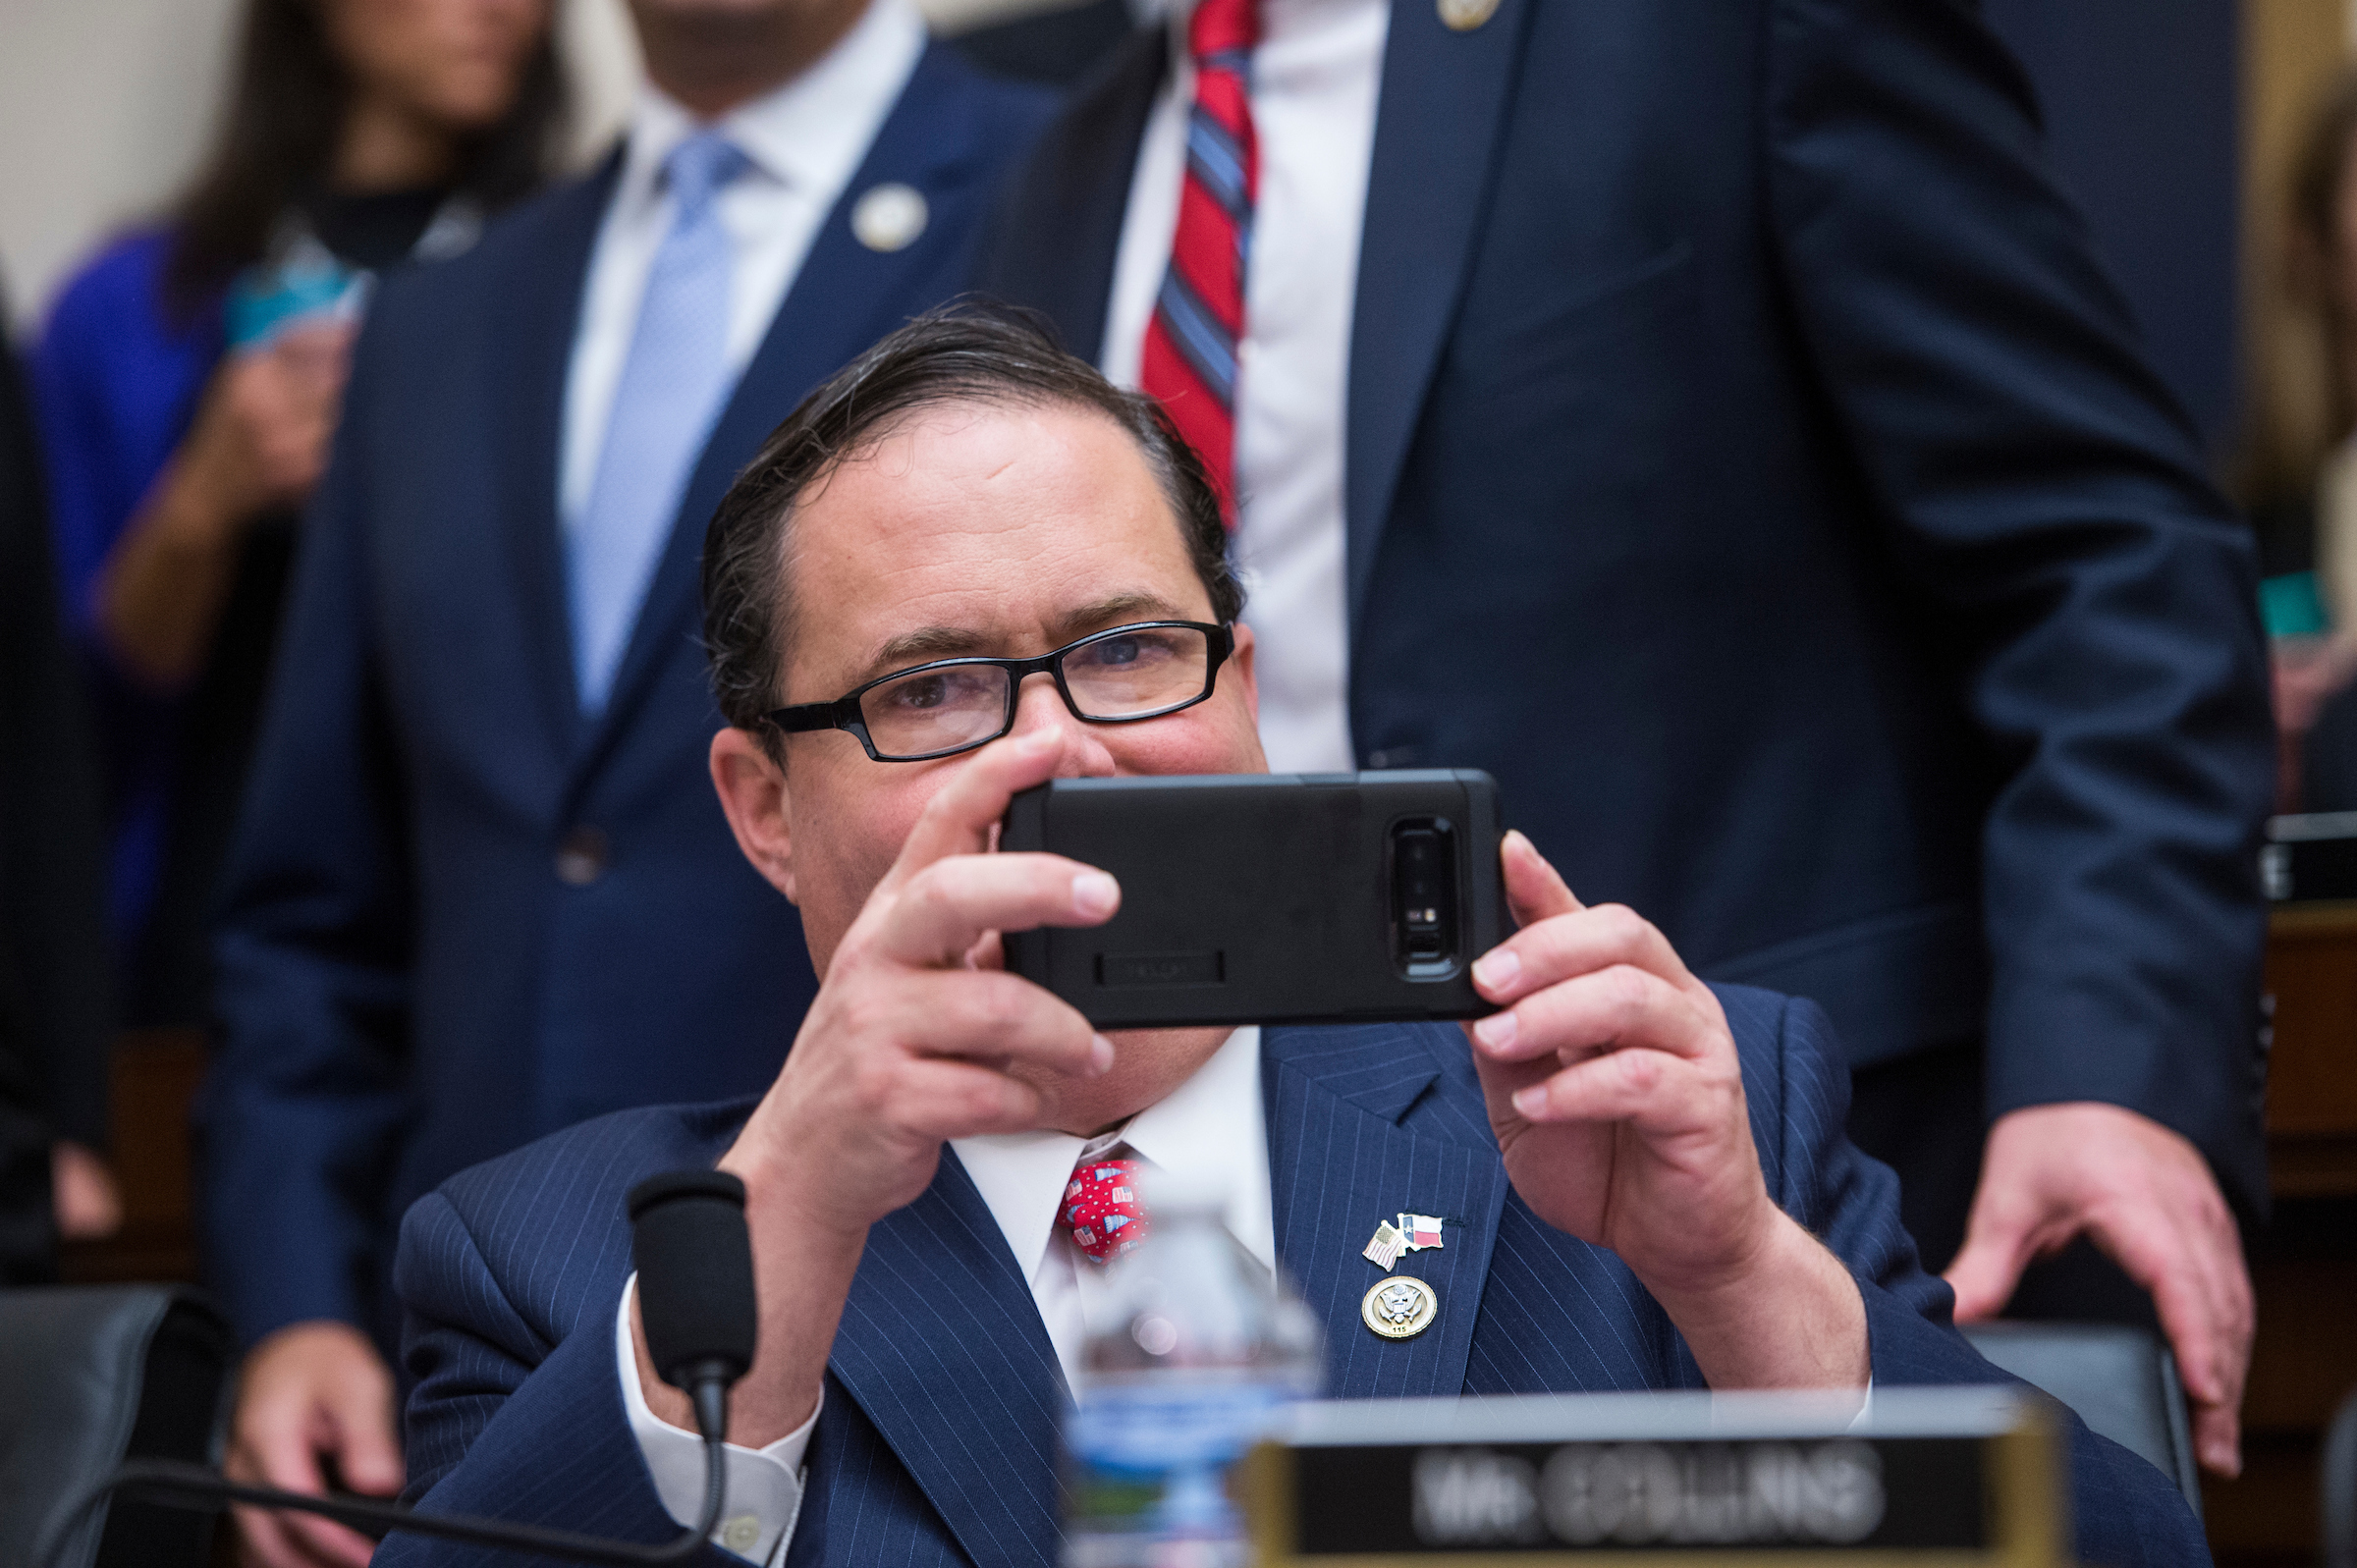 UNITED STATES - NOVEMBER 14: Rep. Blake Farenthold, R-Texas, takes a picture during a House Judiciary Committee hearing in Rayburn Building on November 14, 2017, on oversight of the Department of Justice where Attorney General Jeff Sessions fielded a variety of questions including immigration and Russian meddling in the 2016 election. (Photo By Tom Williams/CQ Roll Call)